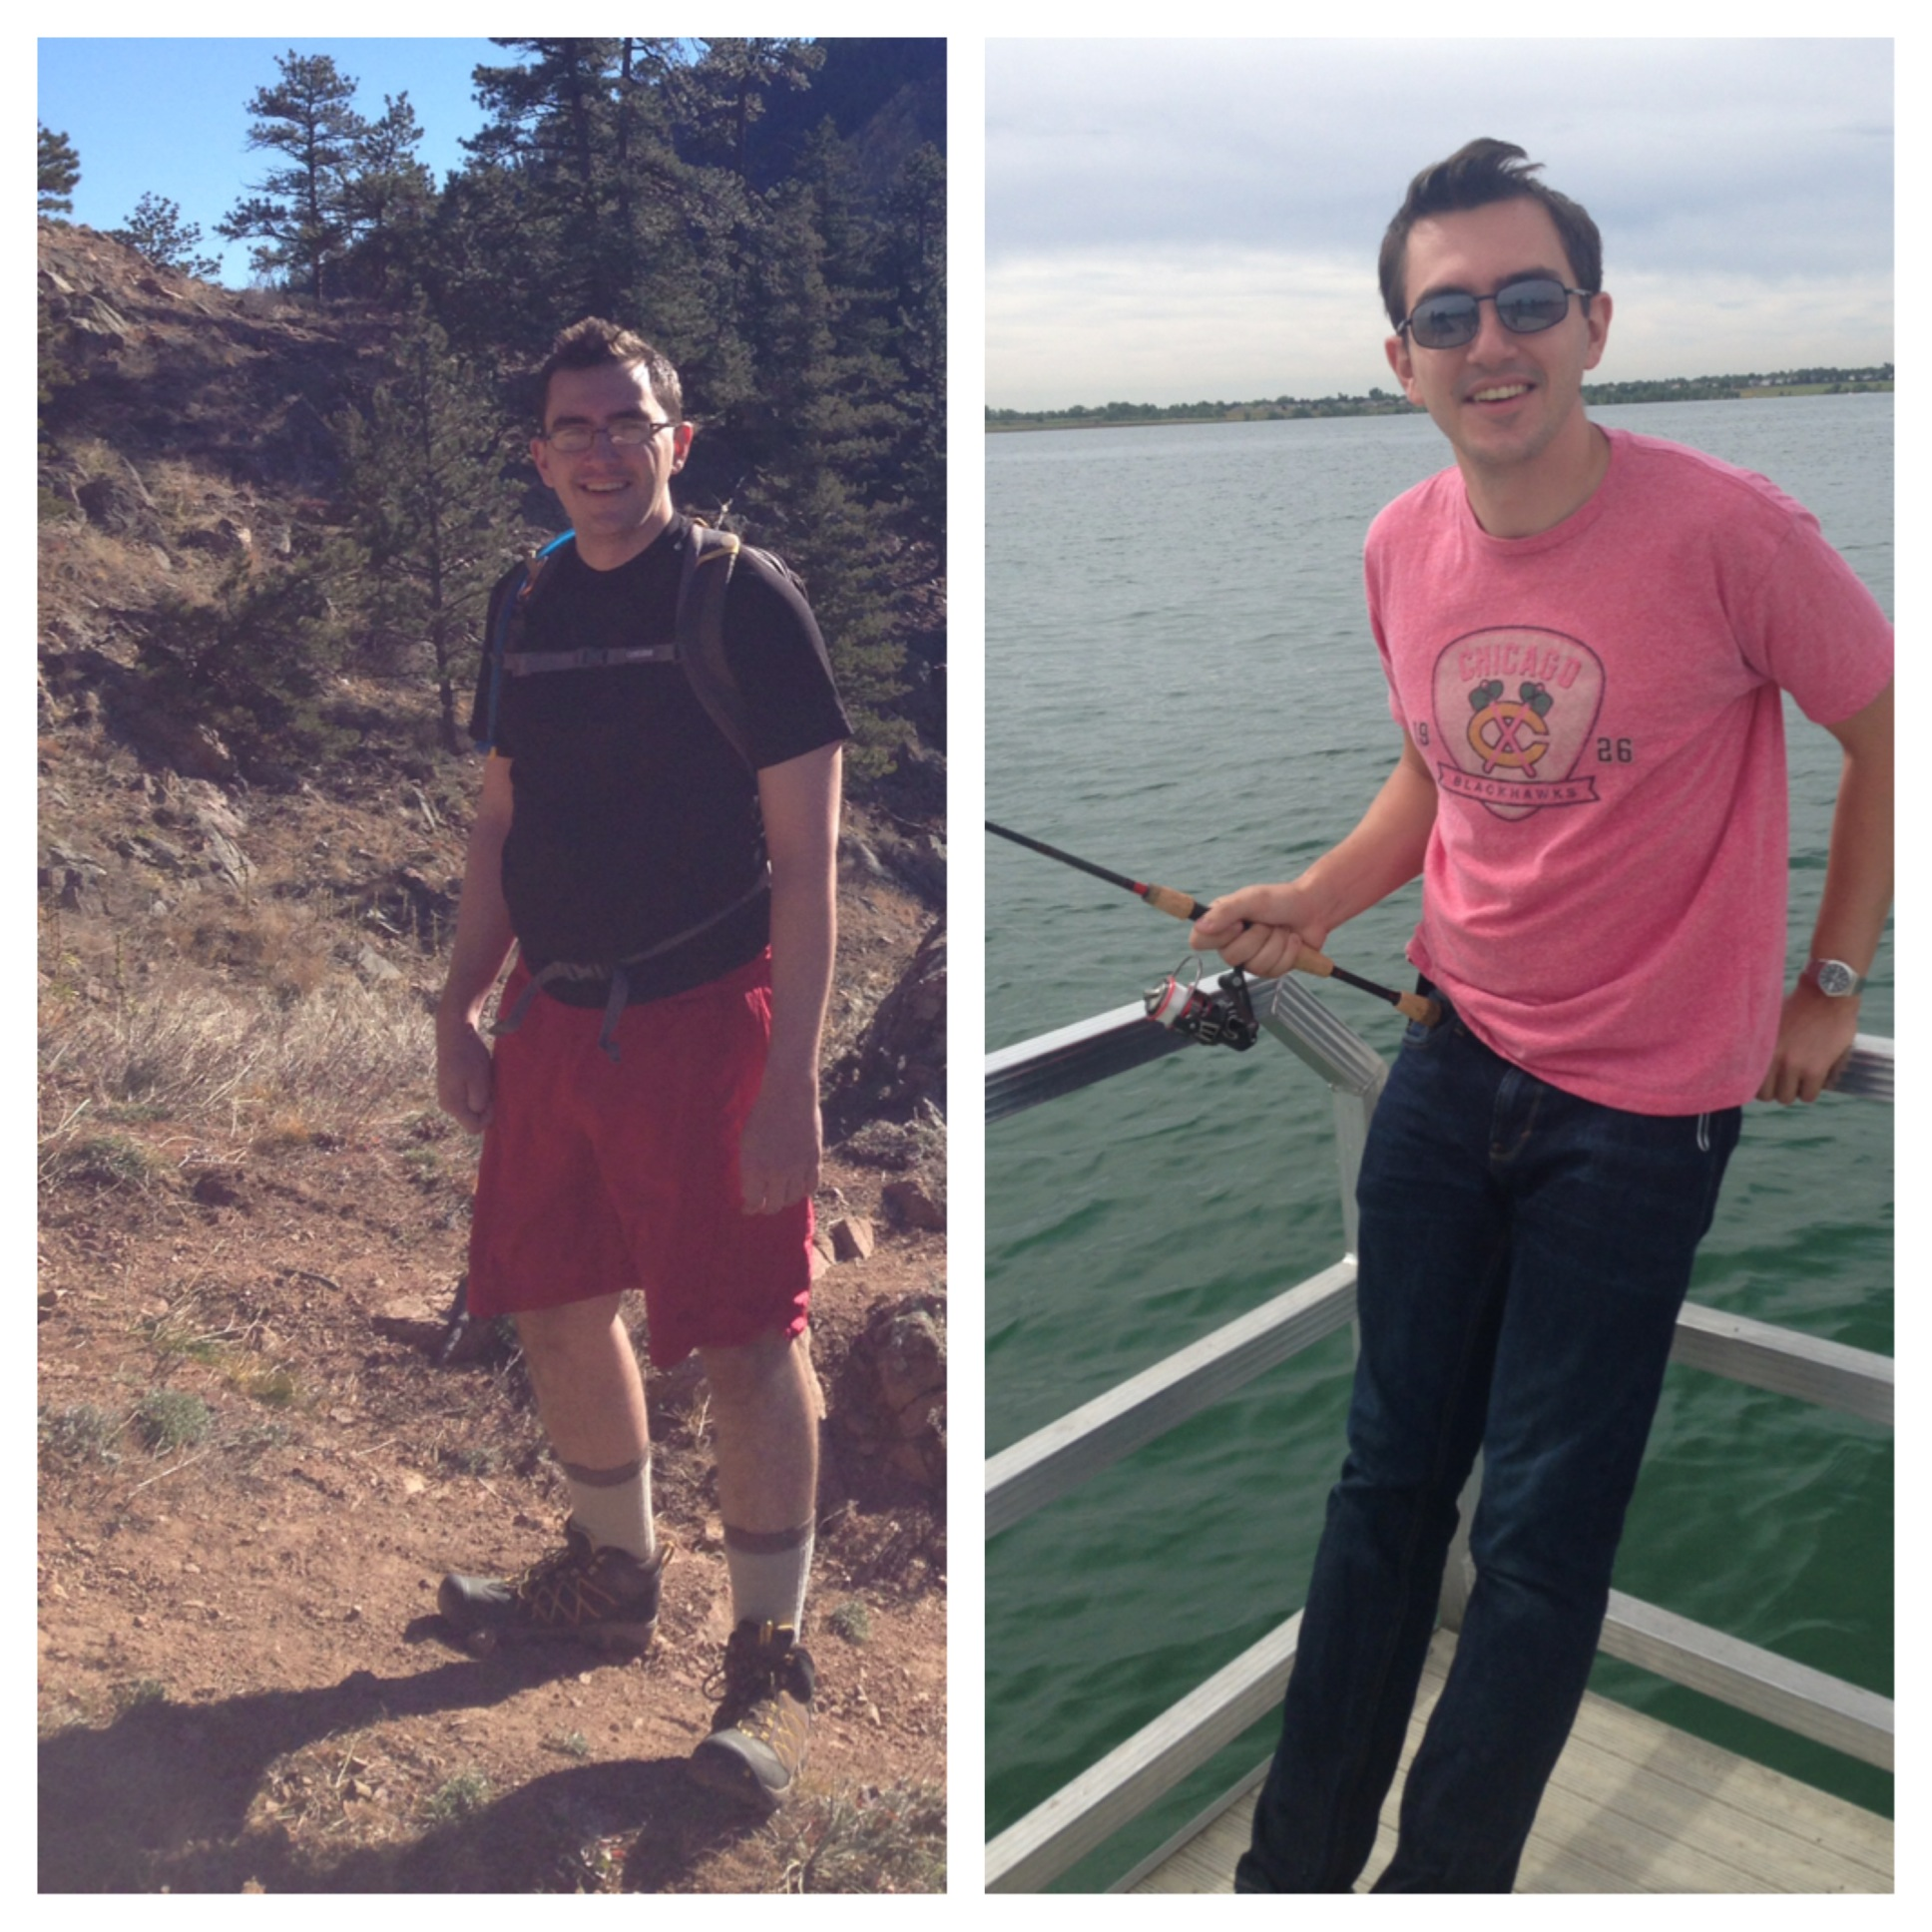 A few months of consistently eating meat and vegetables, getting your stress under control, and hiking does wonders.